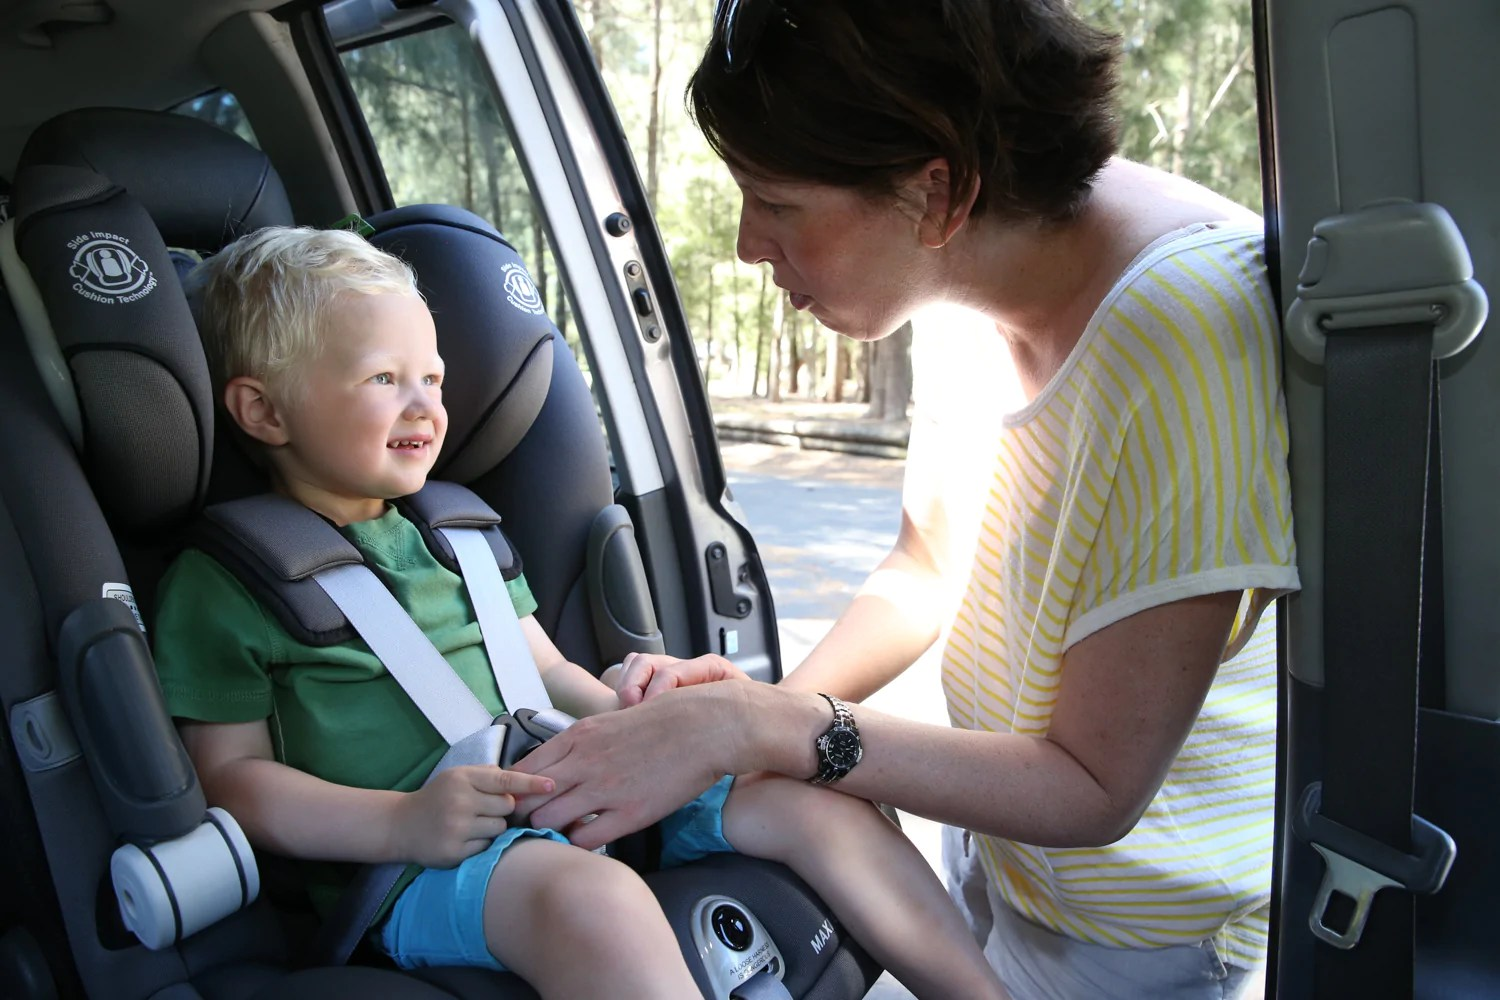 Baby Car Seat Fitting Service Child Safety Car Seats Car Booster Seats Sydney